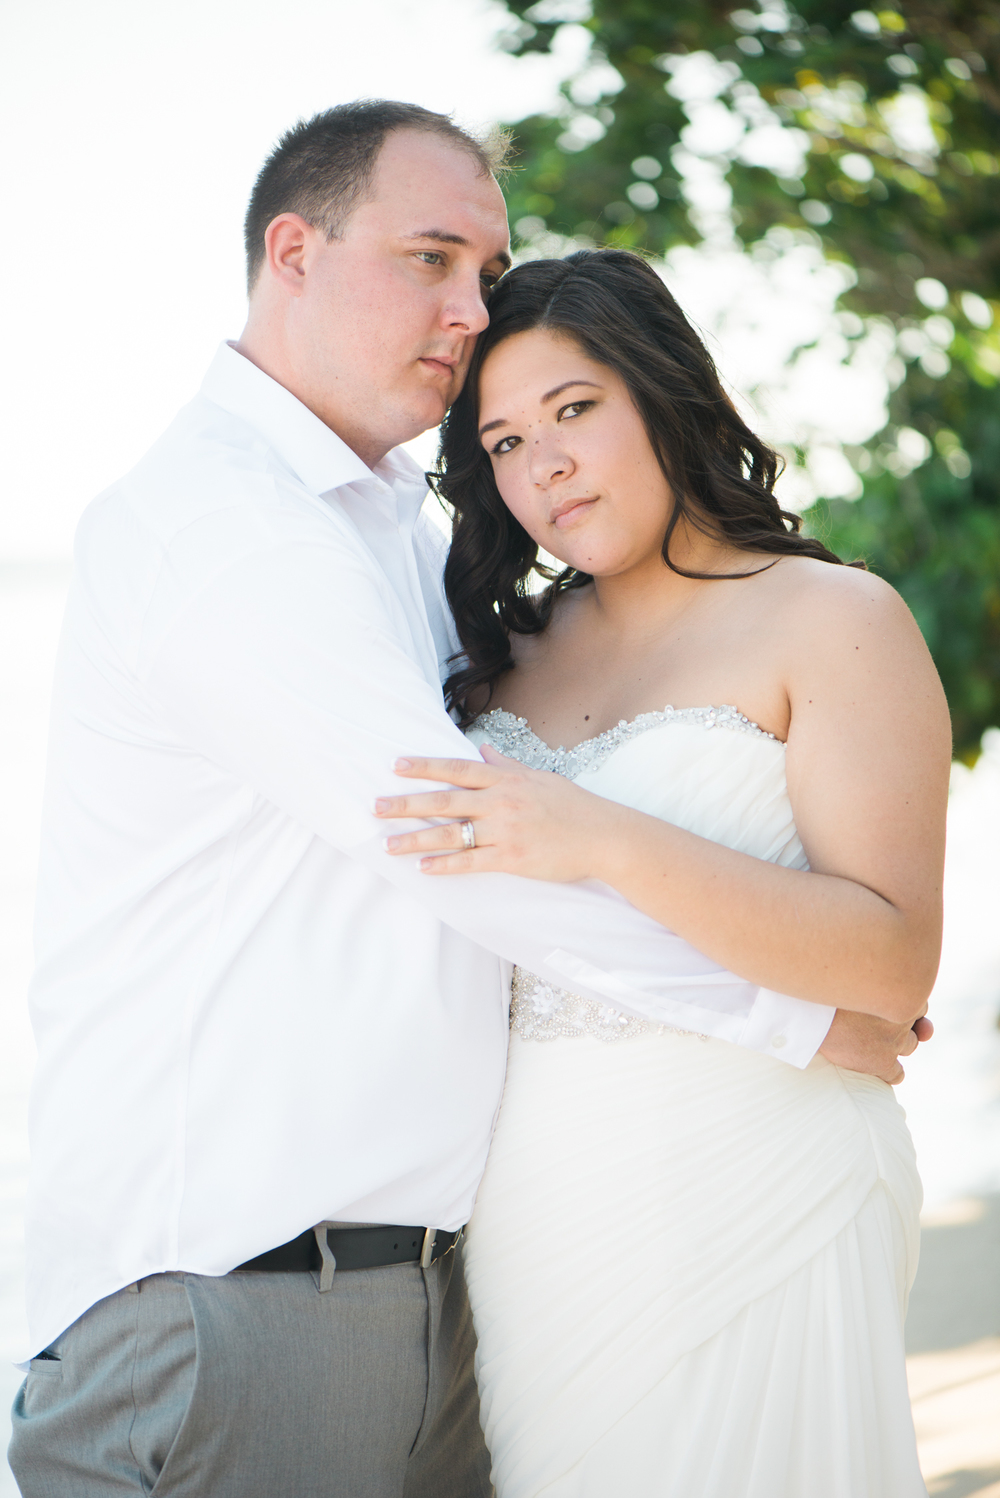 JadeandRyan-Montego-Bay-Jamaica-Wedding-Iberostar-Resort-Beach-90.jpg